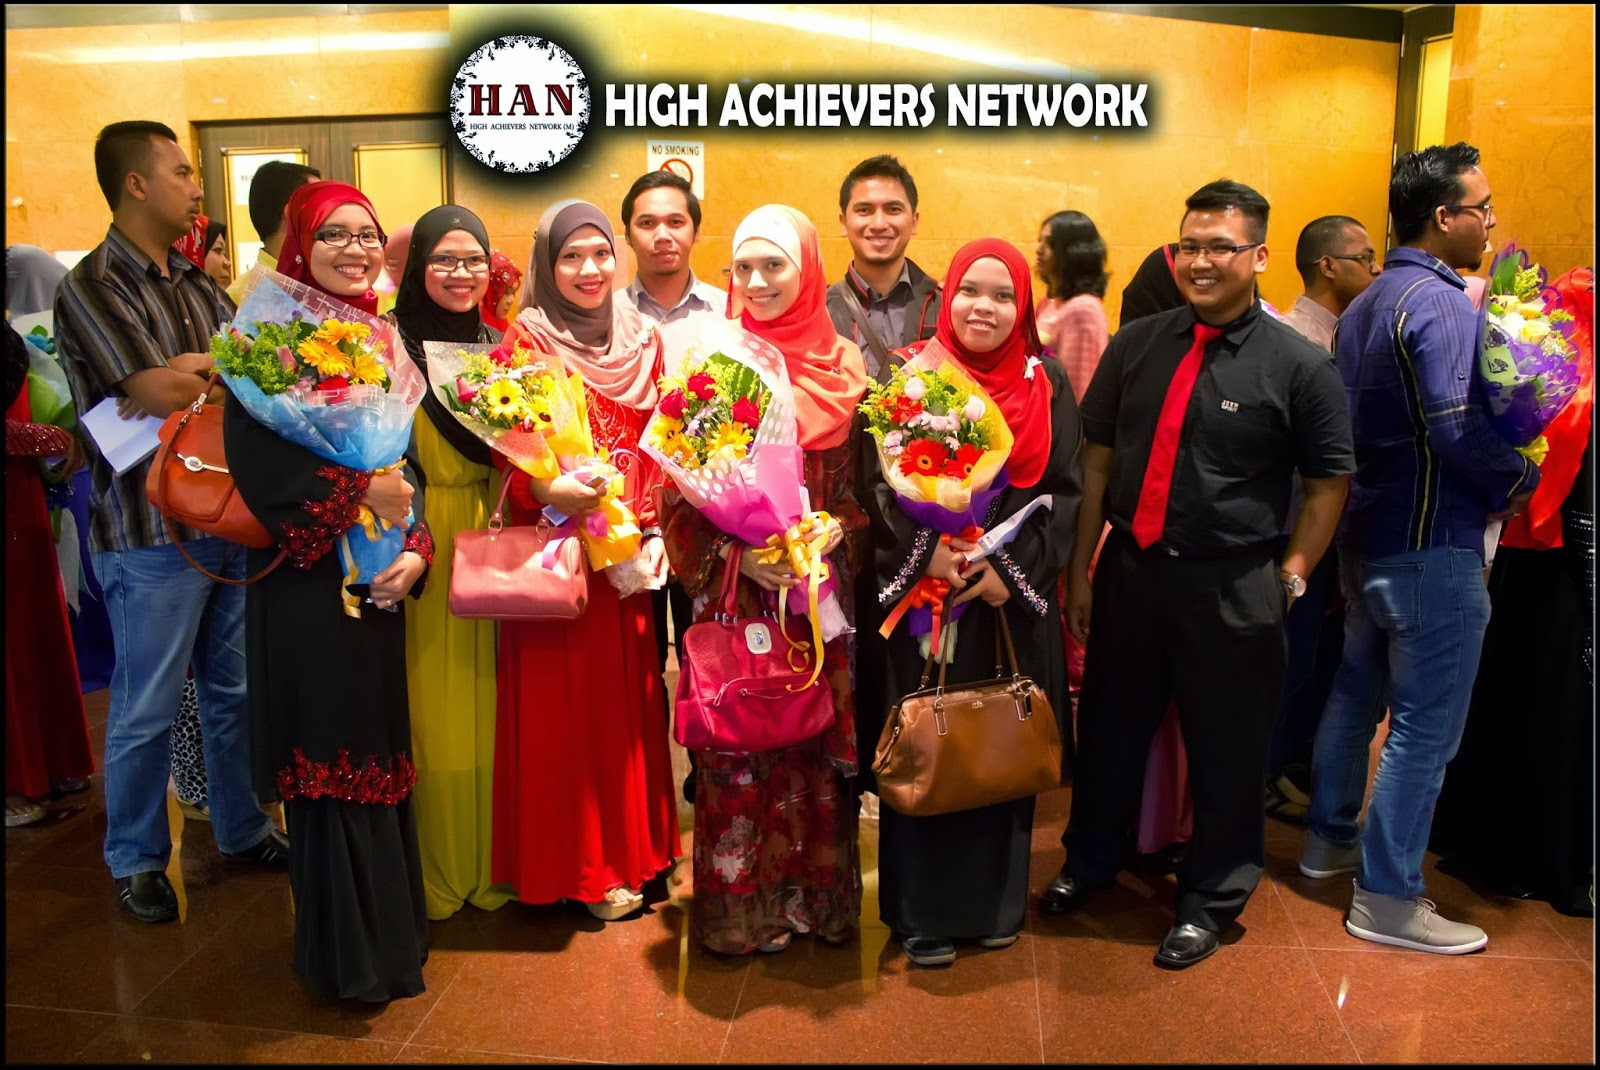 SMSSM JUN 2014 RM 20 000 and RM 60 000 sale achievers